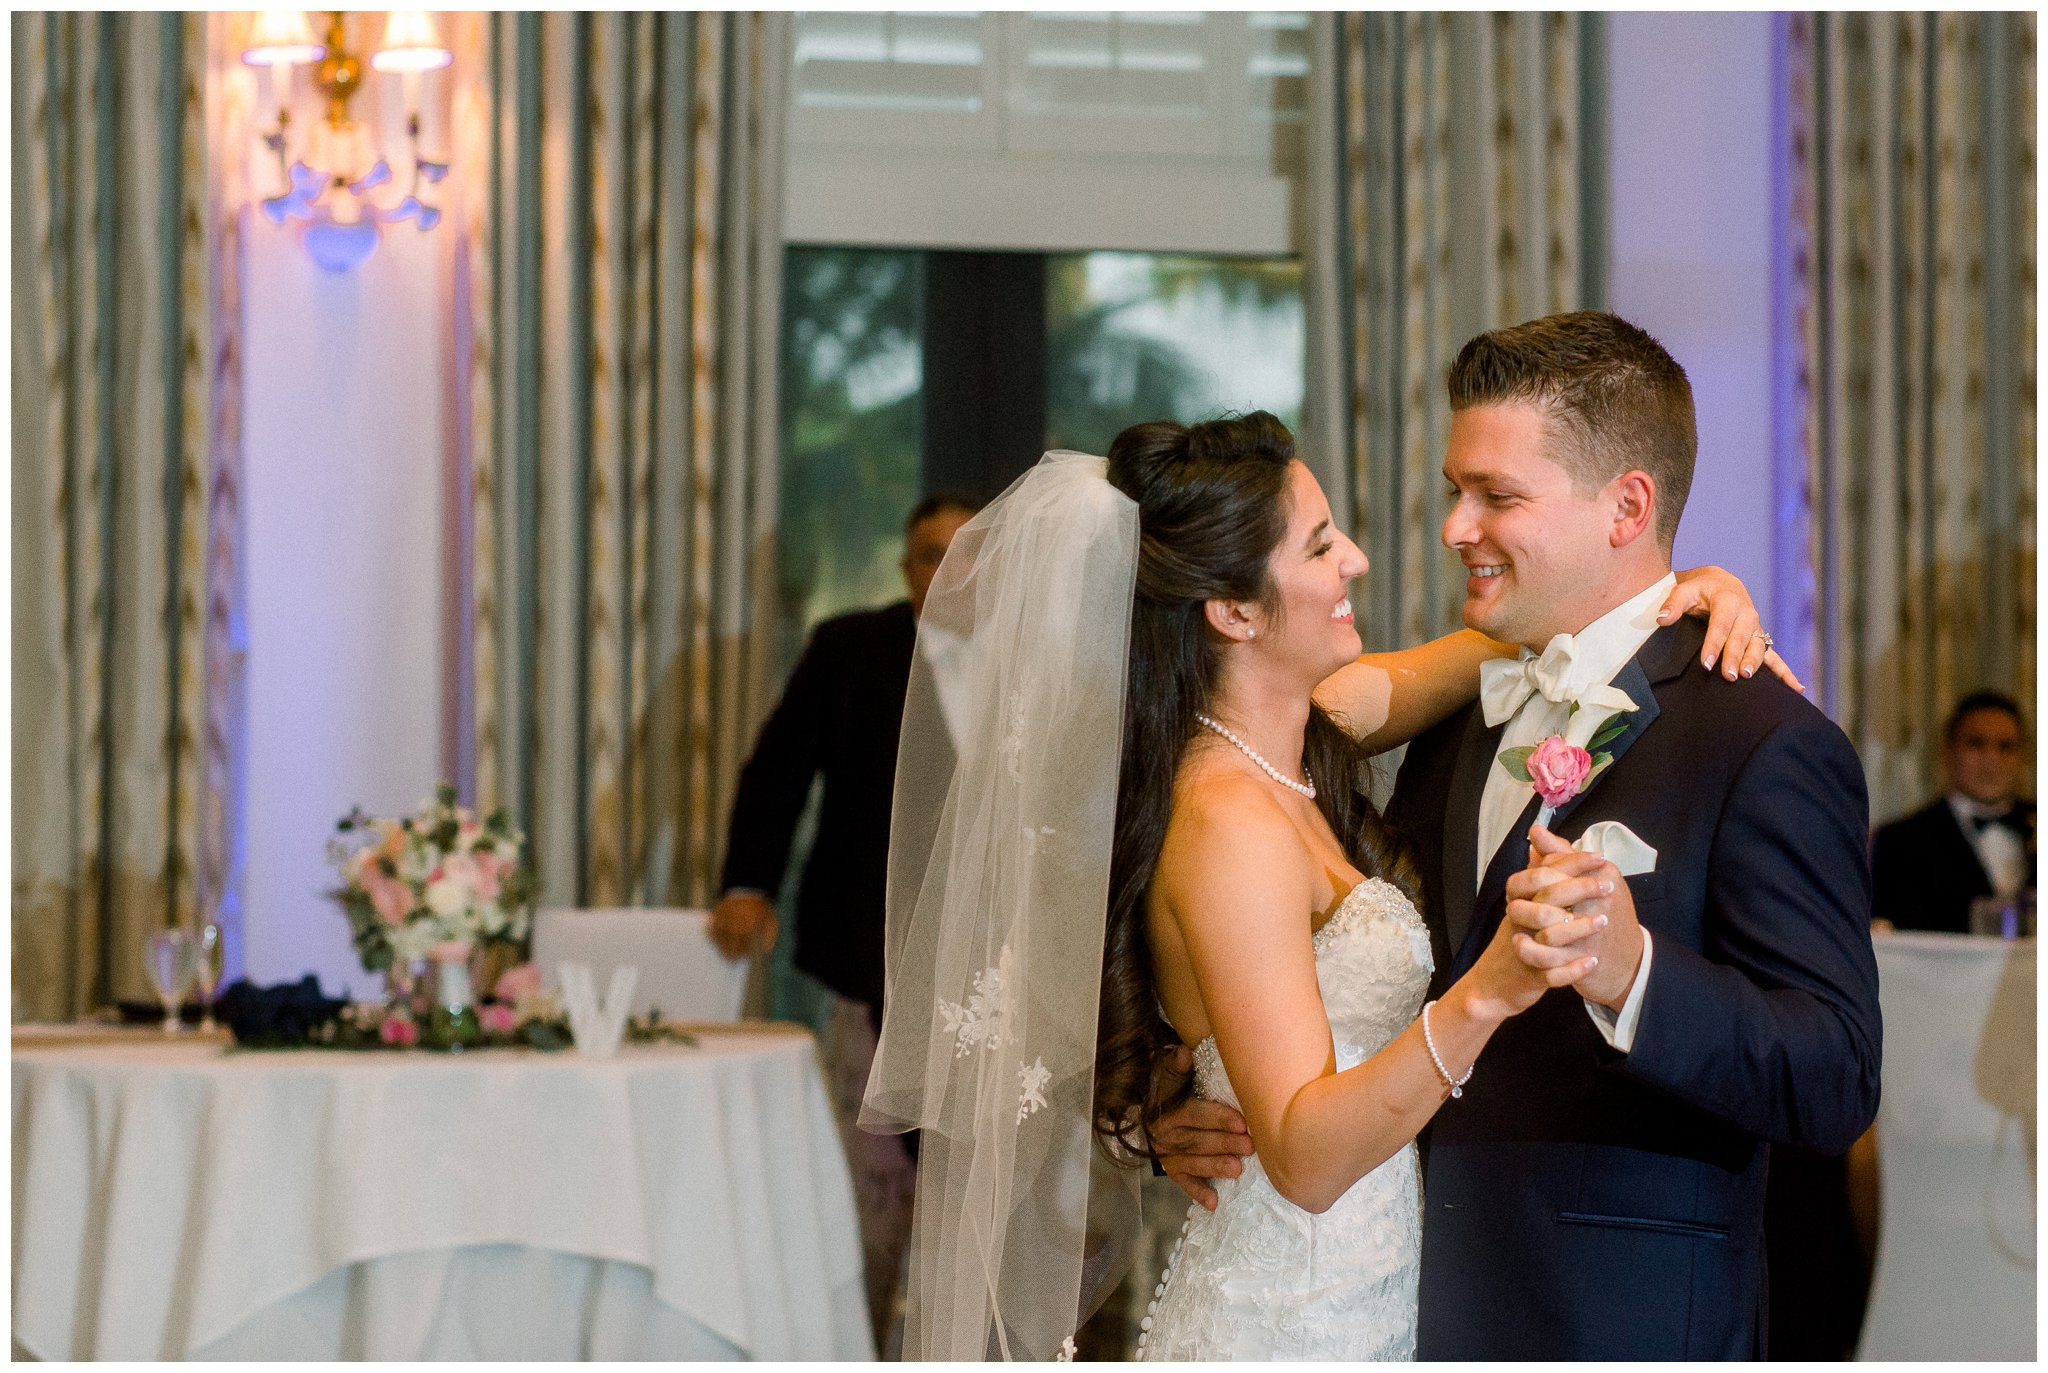 South Florida Wedding Photographer- Palm Beach Wedding Photographer- Jupiter Wedding Photographer- Florida Photographer- Willoughby Country Club Wedding- Sturat Florida Wedding- St Bernadette Port St Lucie Wedding_0035.jpg